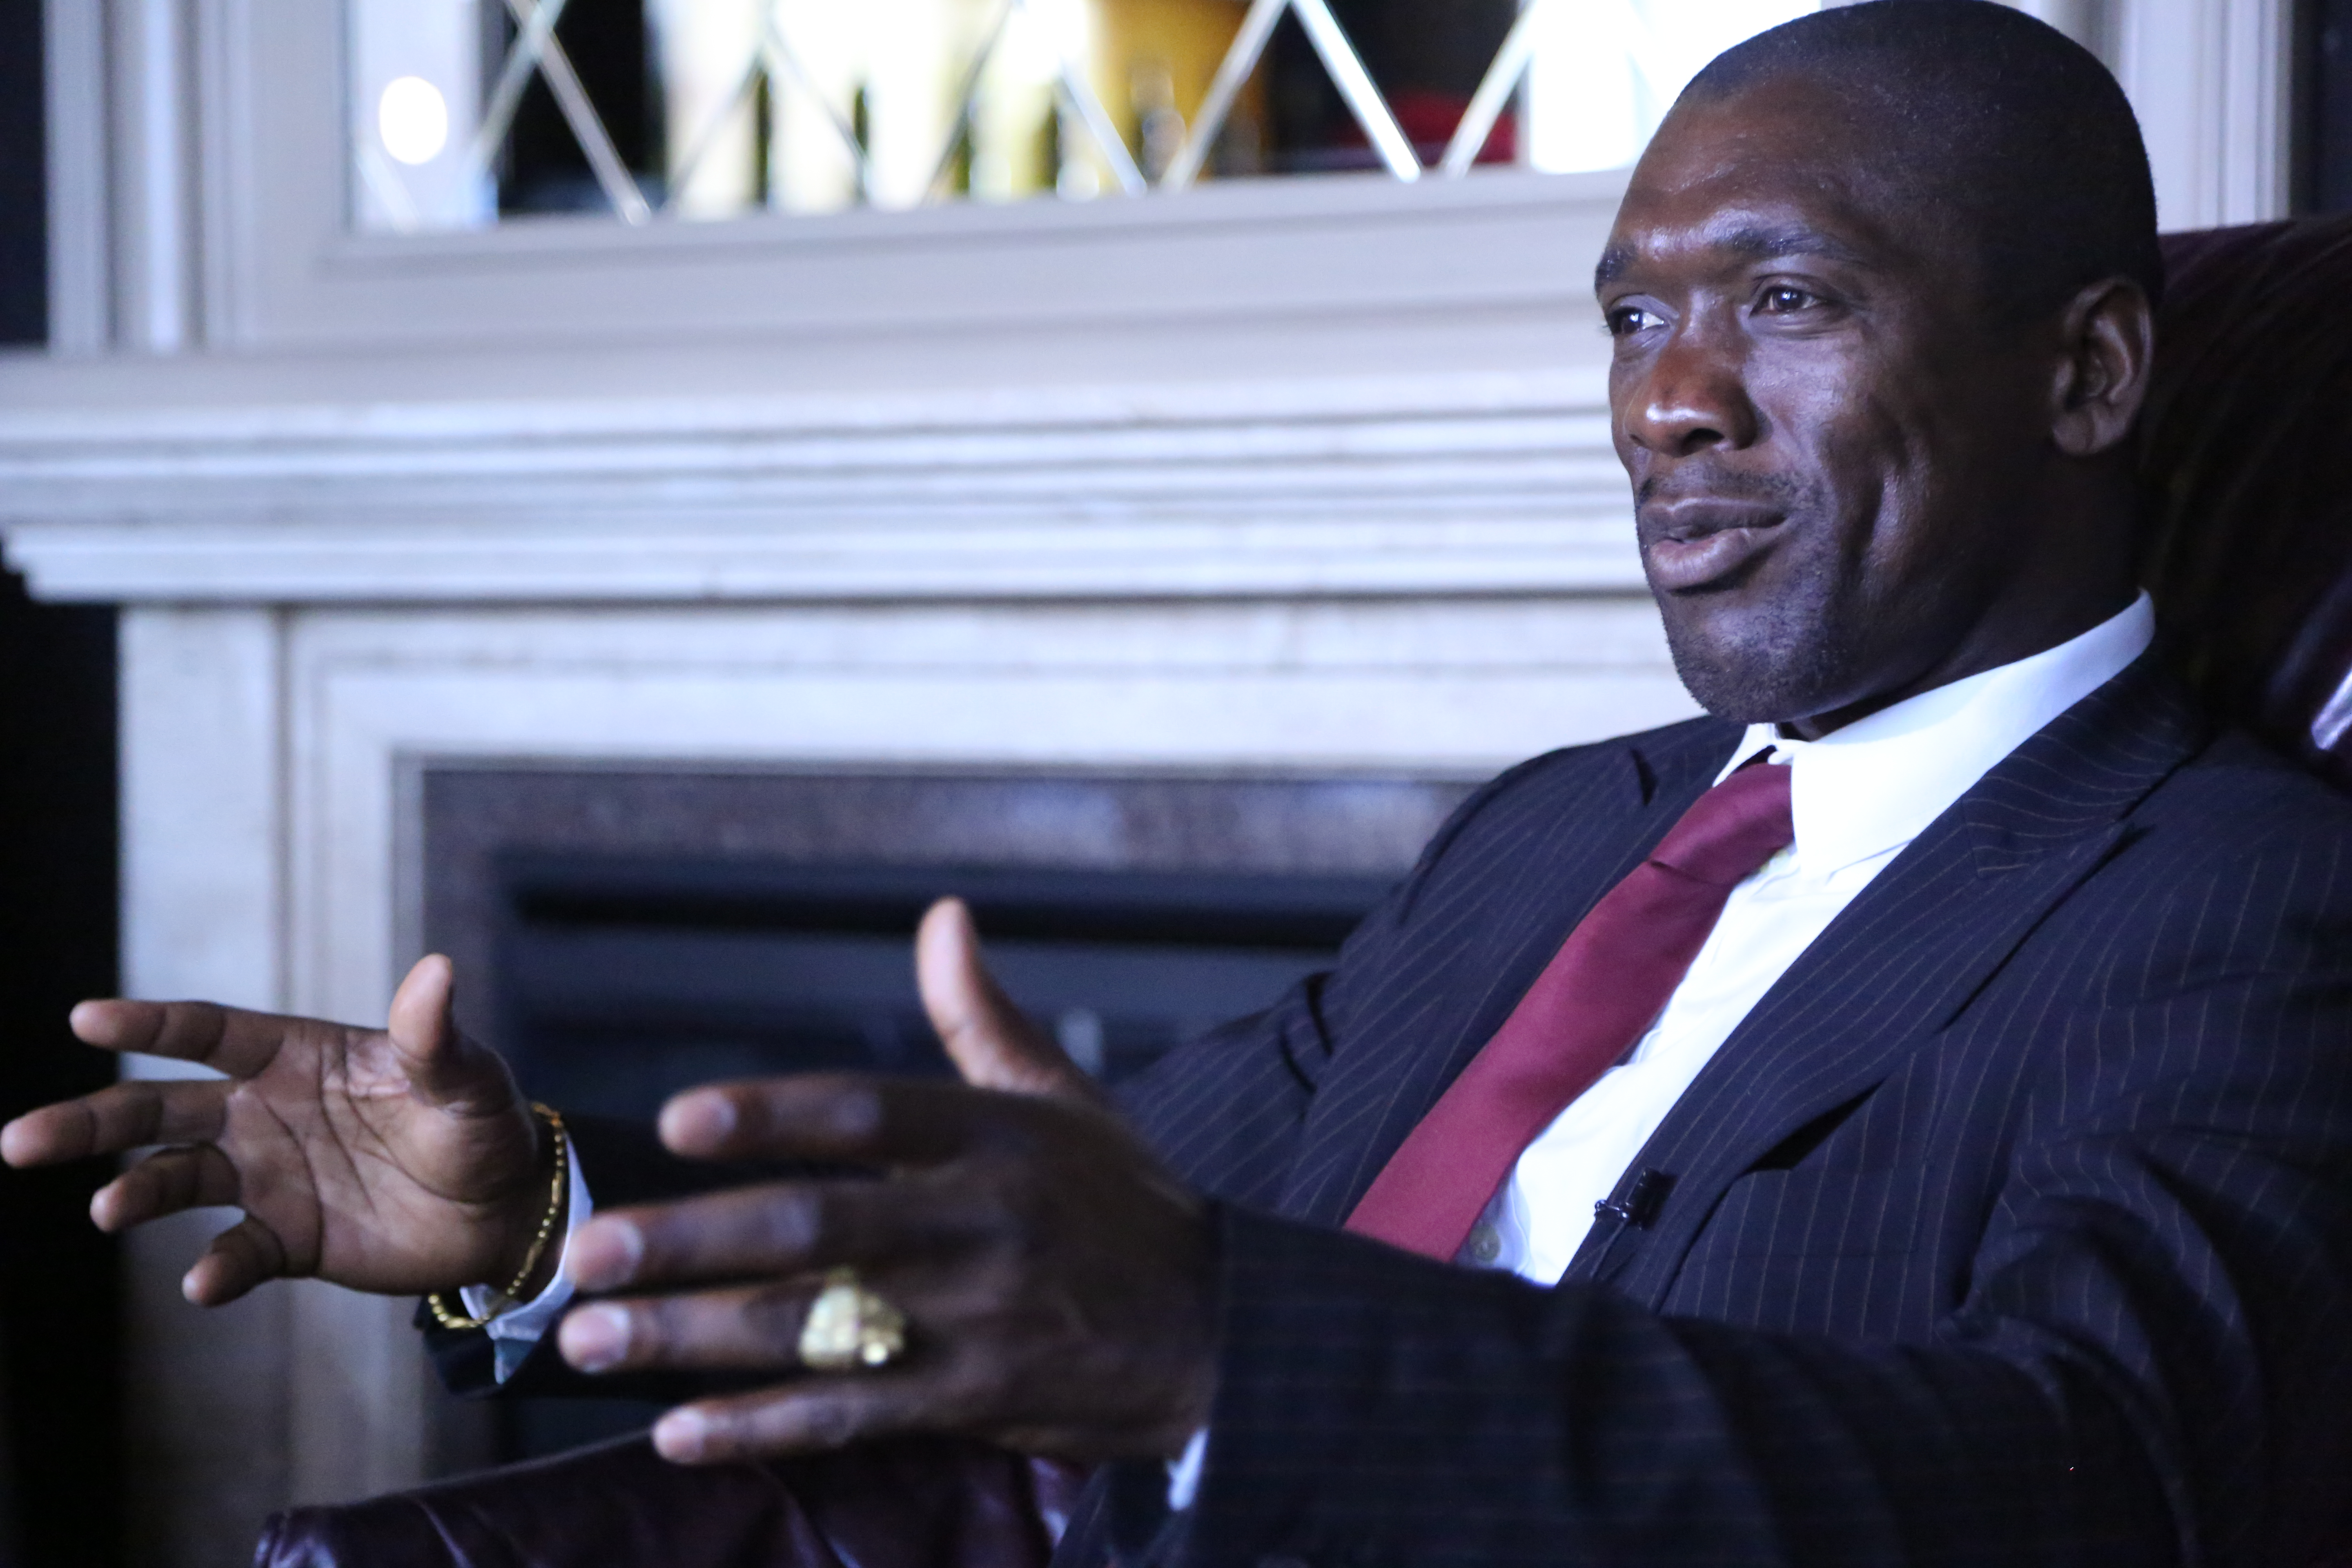 Clarence Seedorf in Sofia: The Joint Executive Master's Program of AUBG and SDA Bocconi Embodies Leading by Example